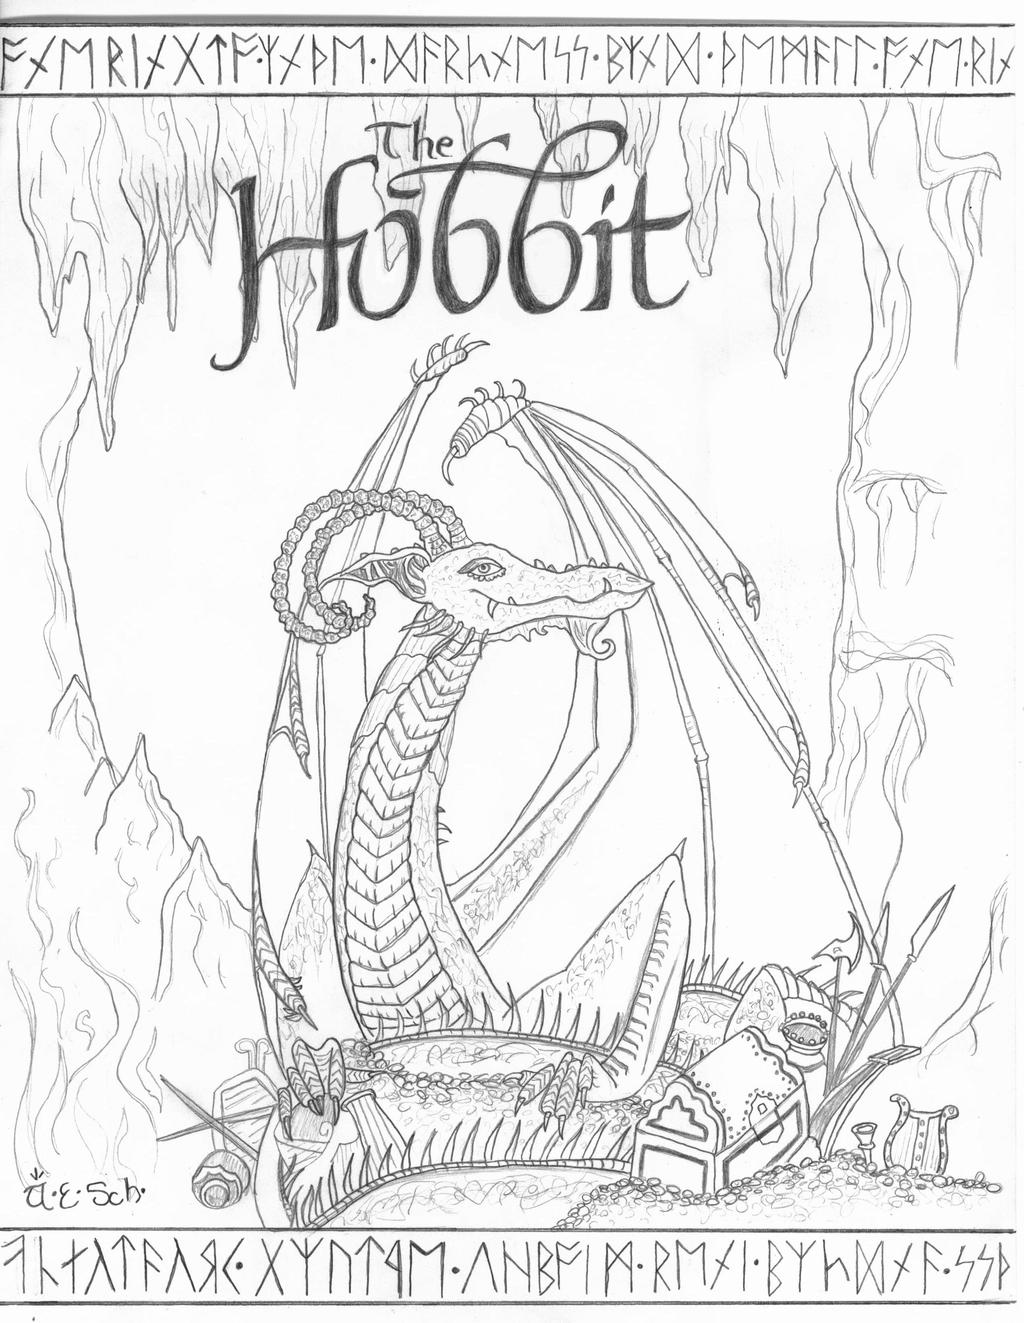 the hobbit colouring pages adult coloring page hobbit house from lord of the rings etsy colouring hobbit the pages